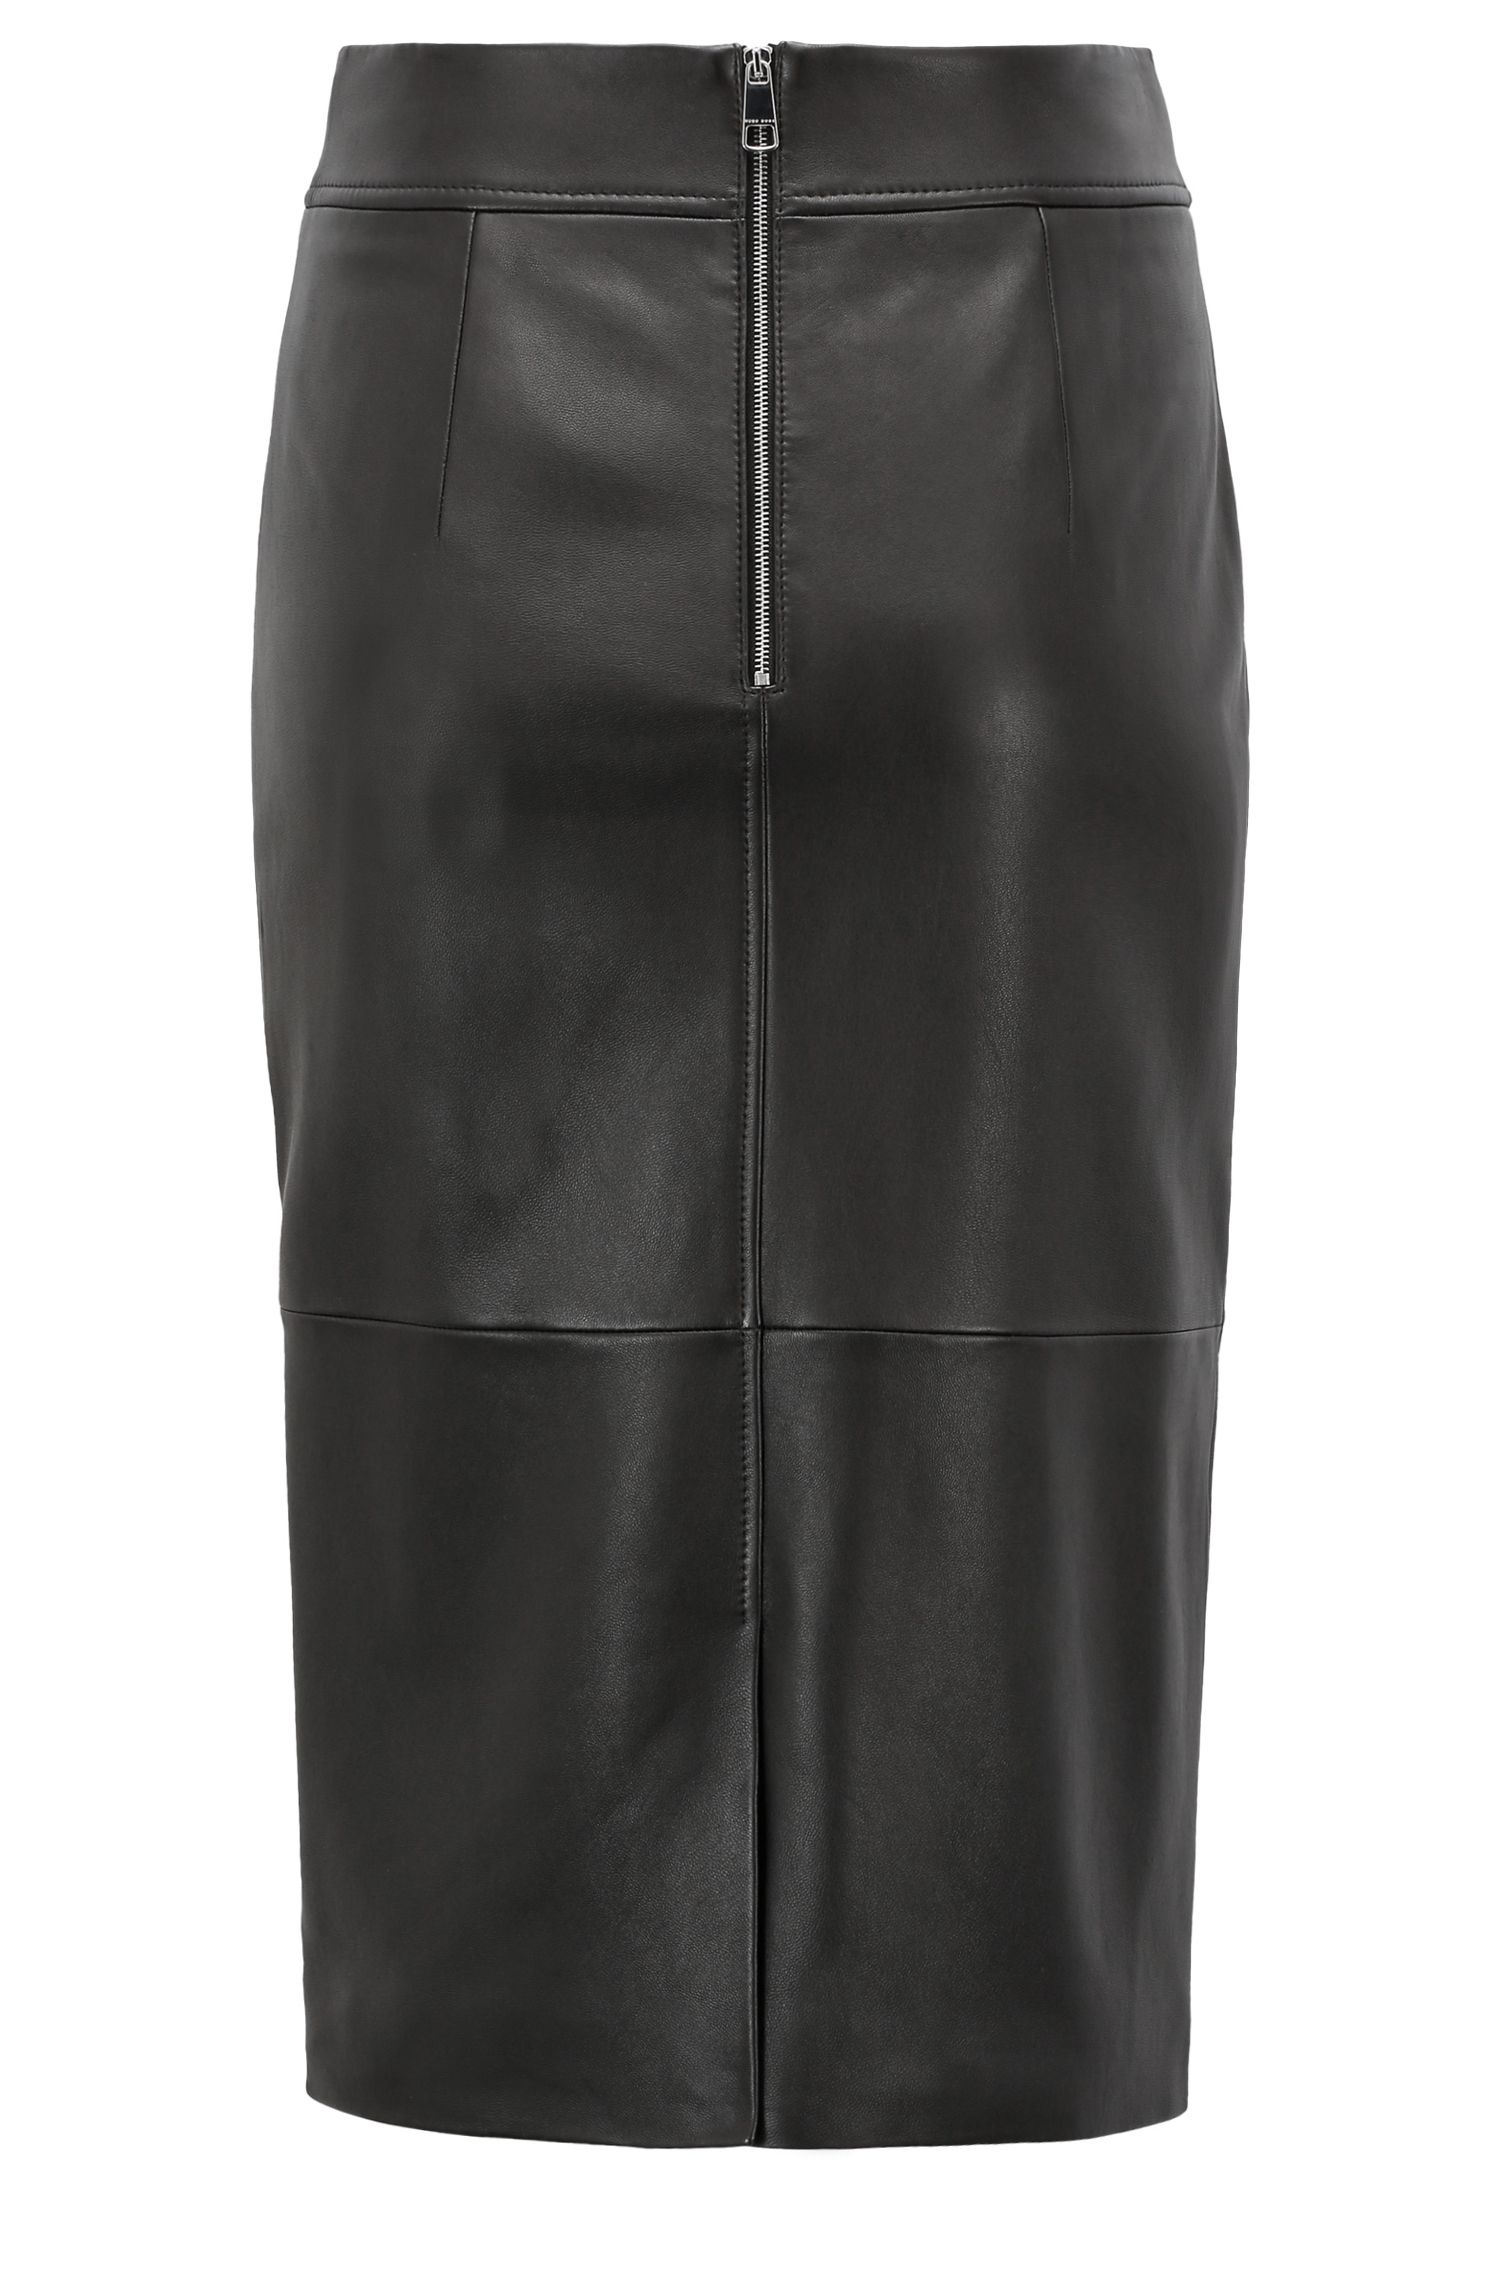 Lambskin-leather pencil skirt with paneled structure, Black